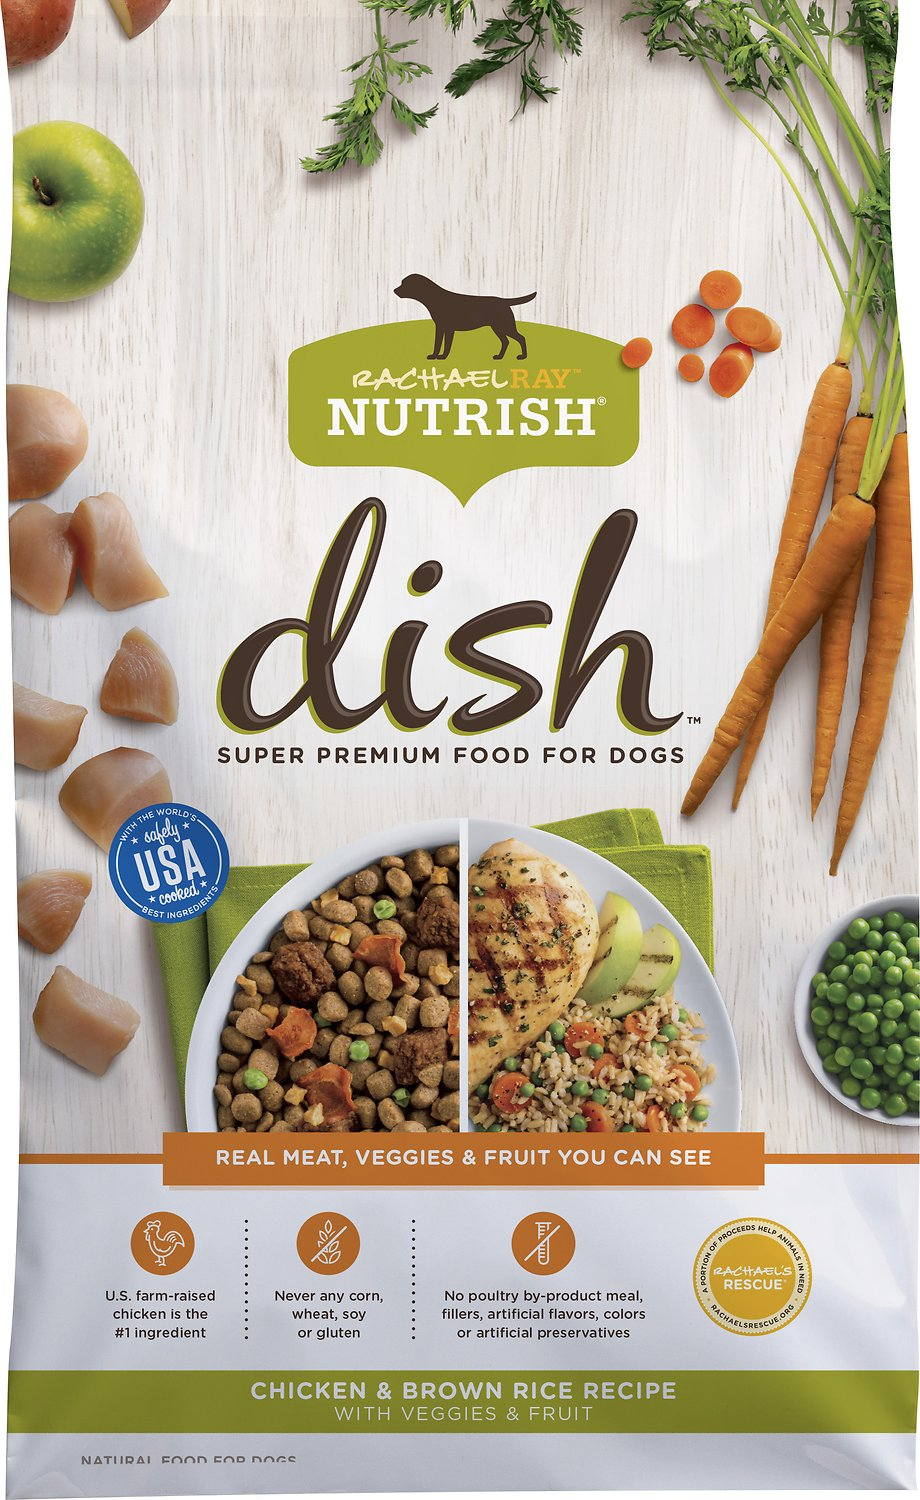 Rachael Ray Nutrish Dog Food Review Images And Description